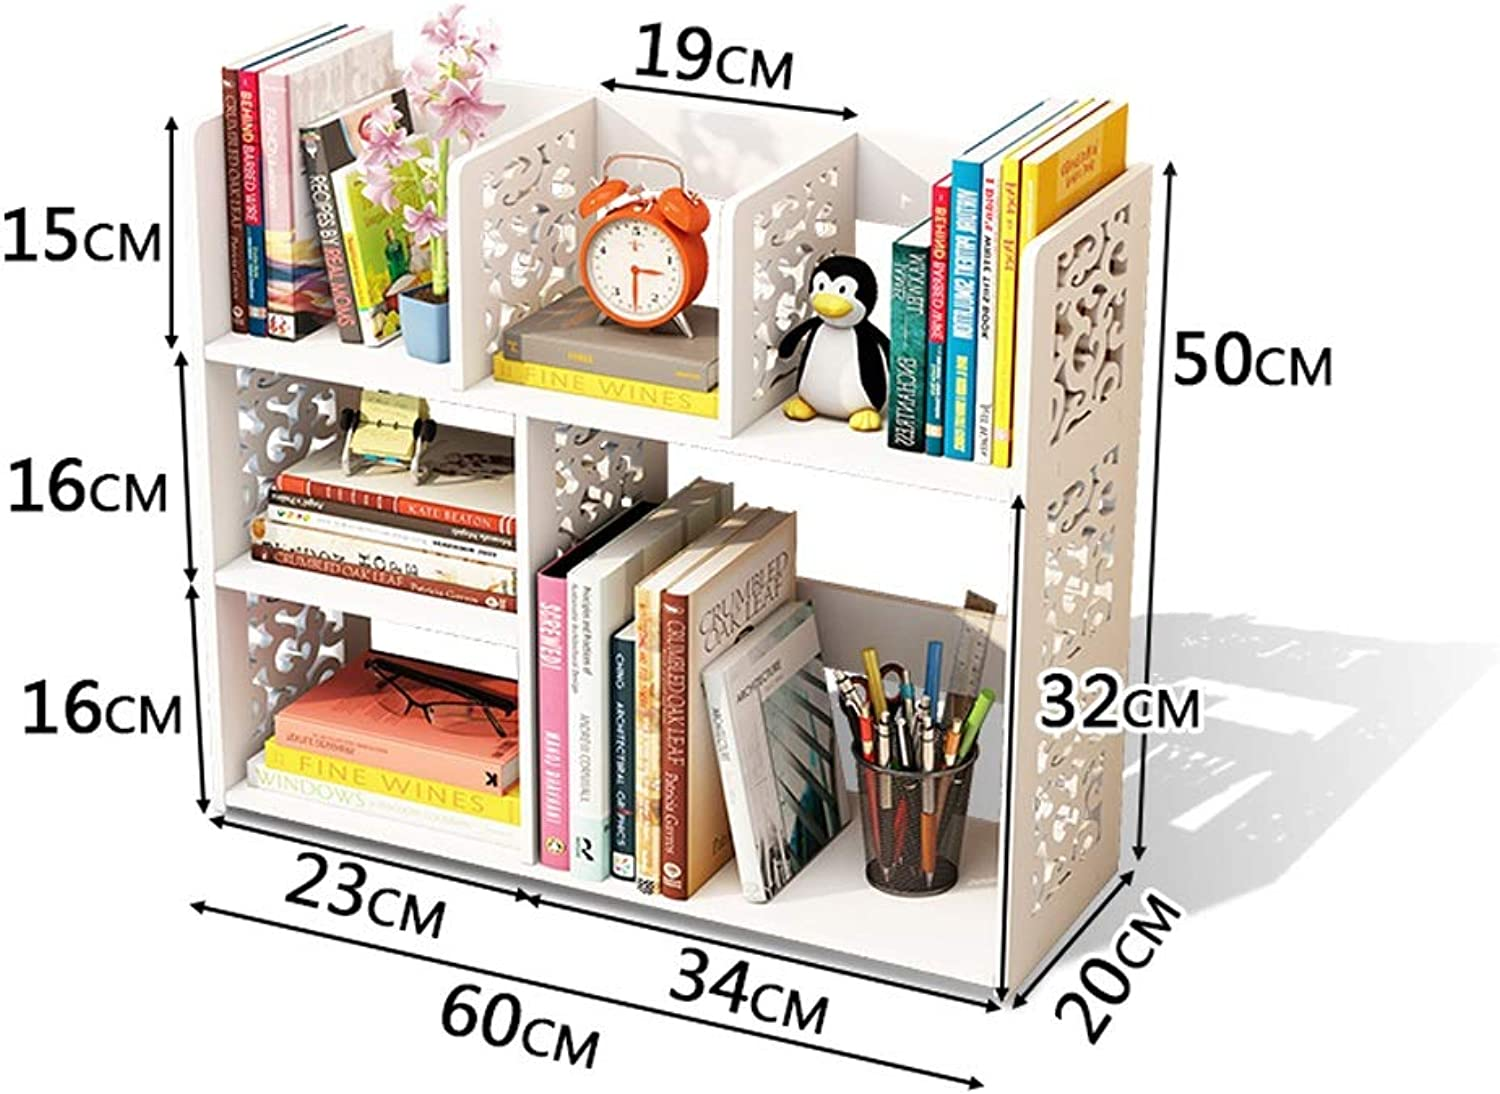 MING REN Bookshelf - Creative Simple Desktop Bookcase Living Room Bedroom Multi-Function Storage Rack (3 colors Available) Storage Shelf (color   White)